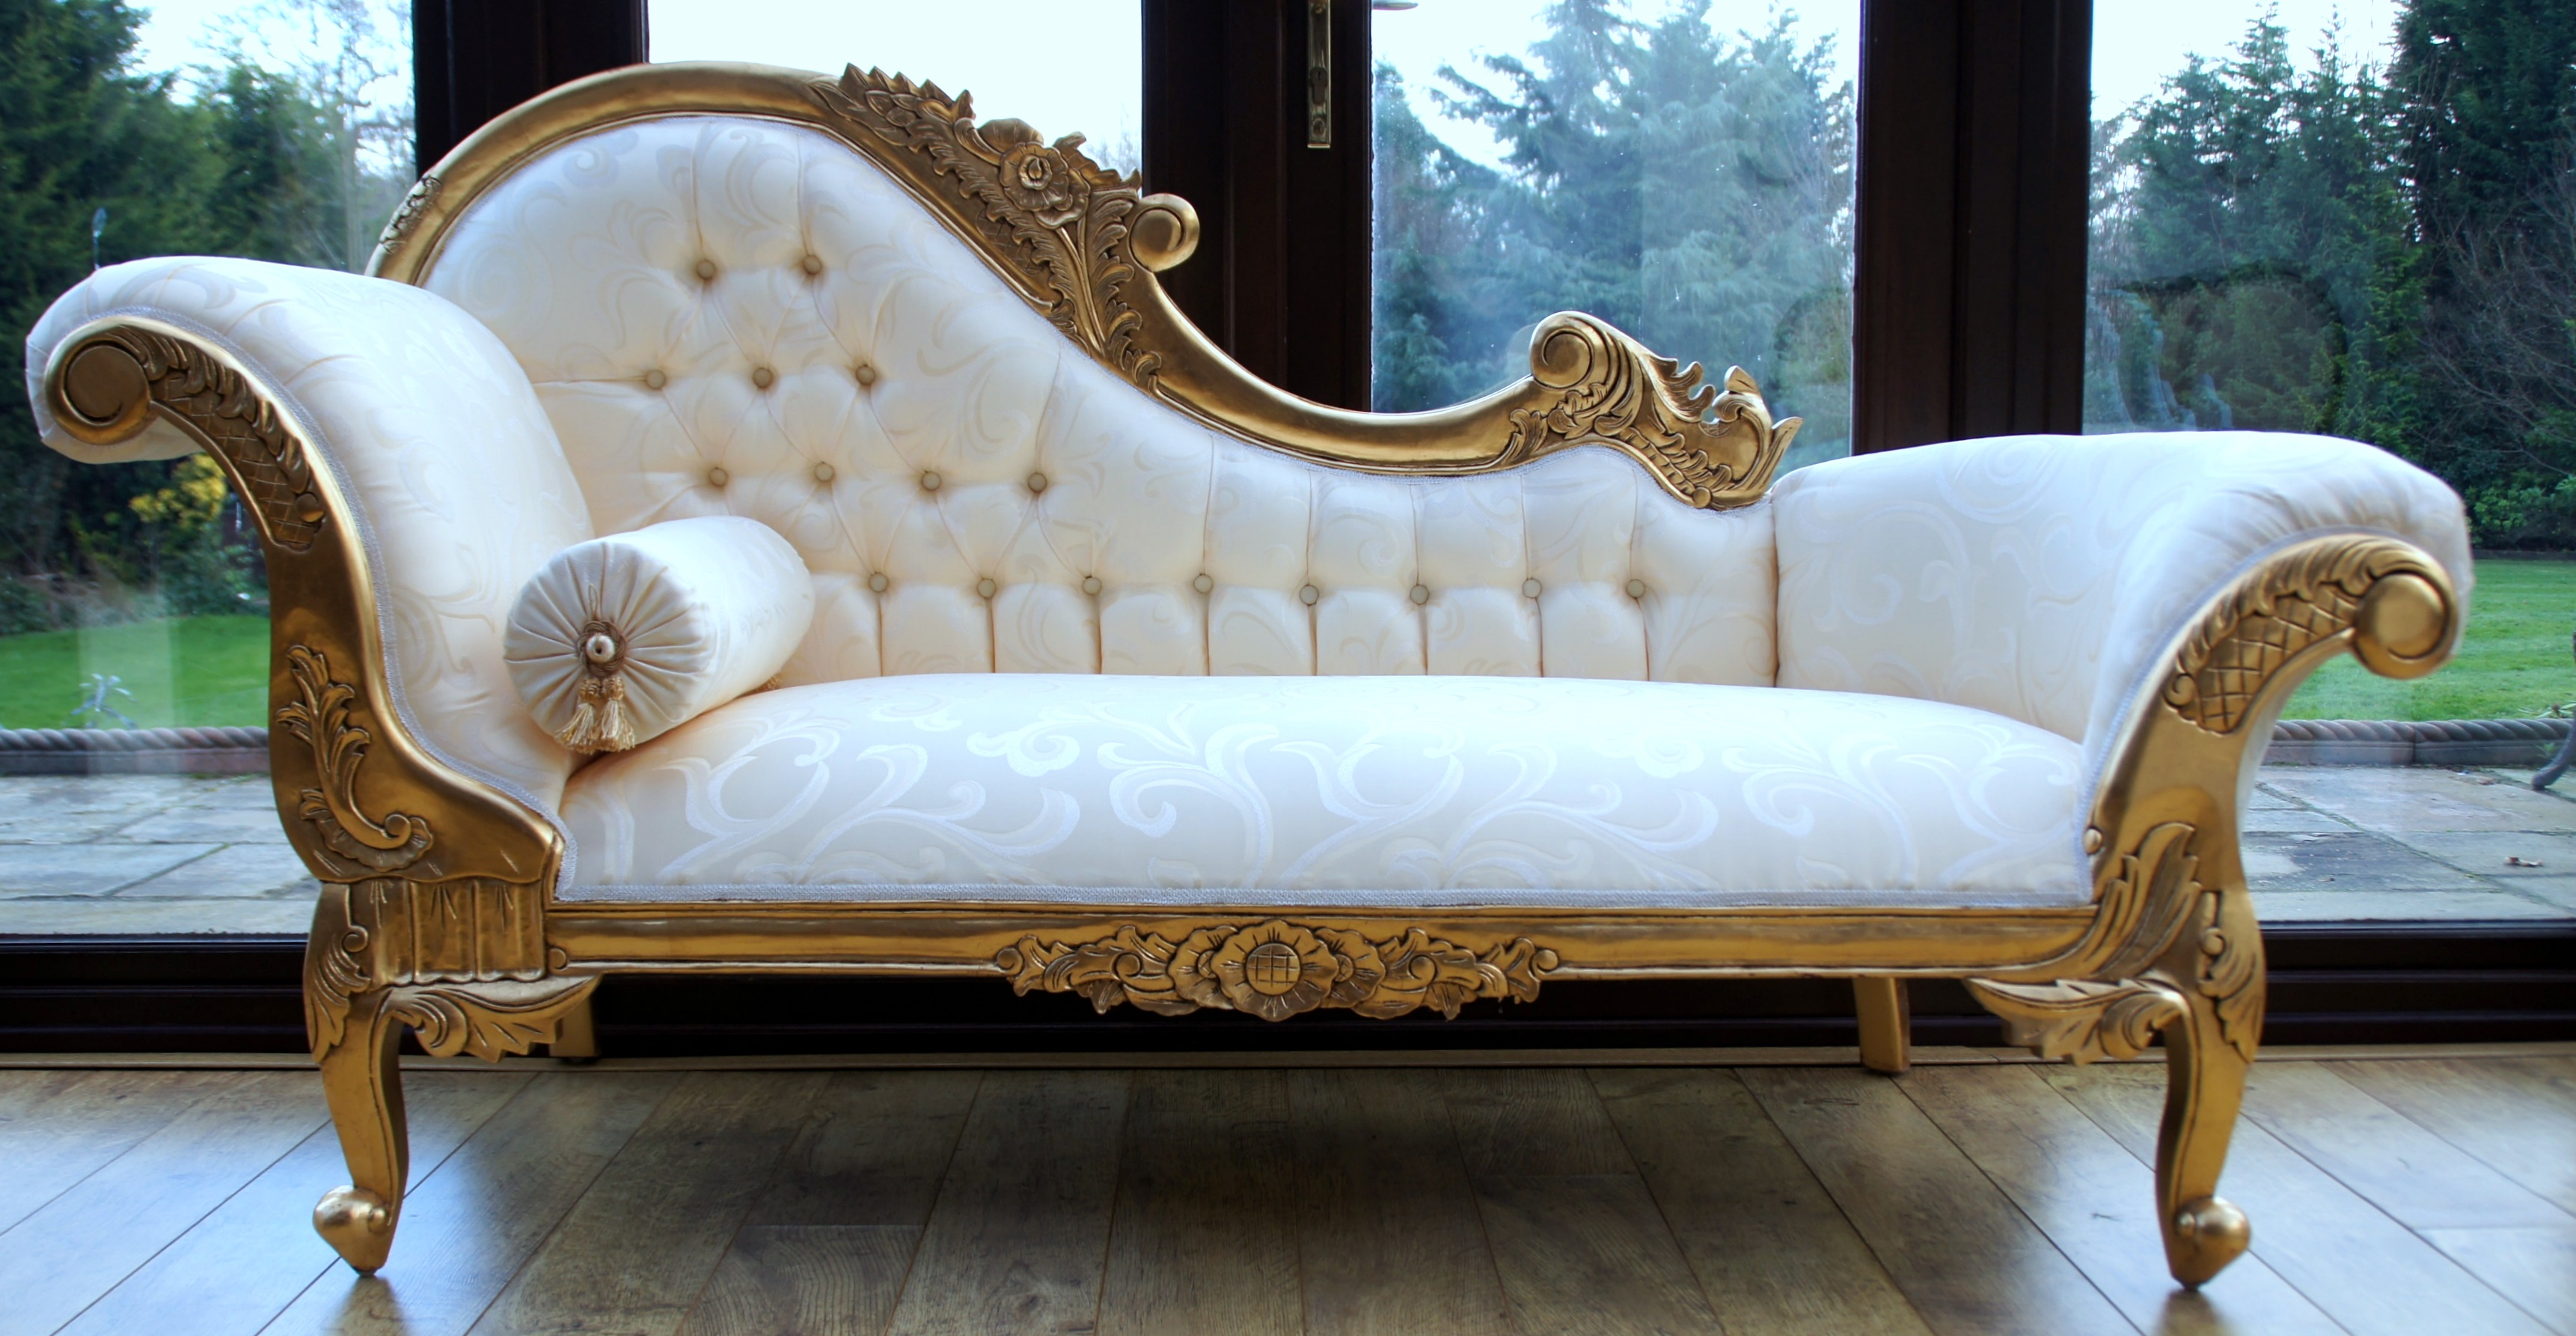 White hampshire chaise with gilded gold frame via hampshire barn